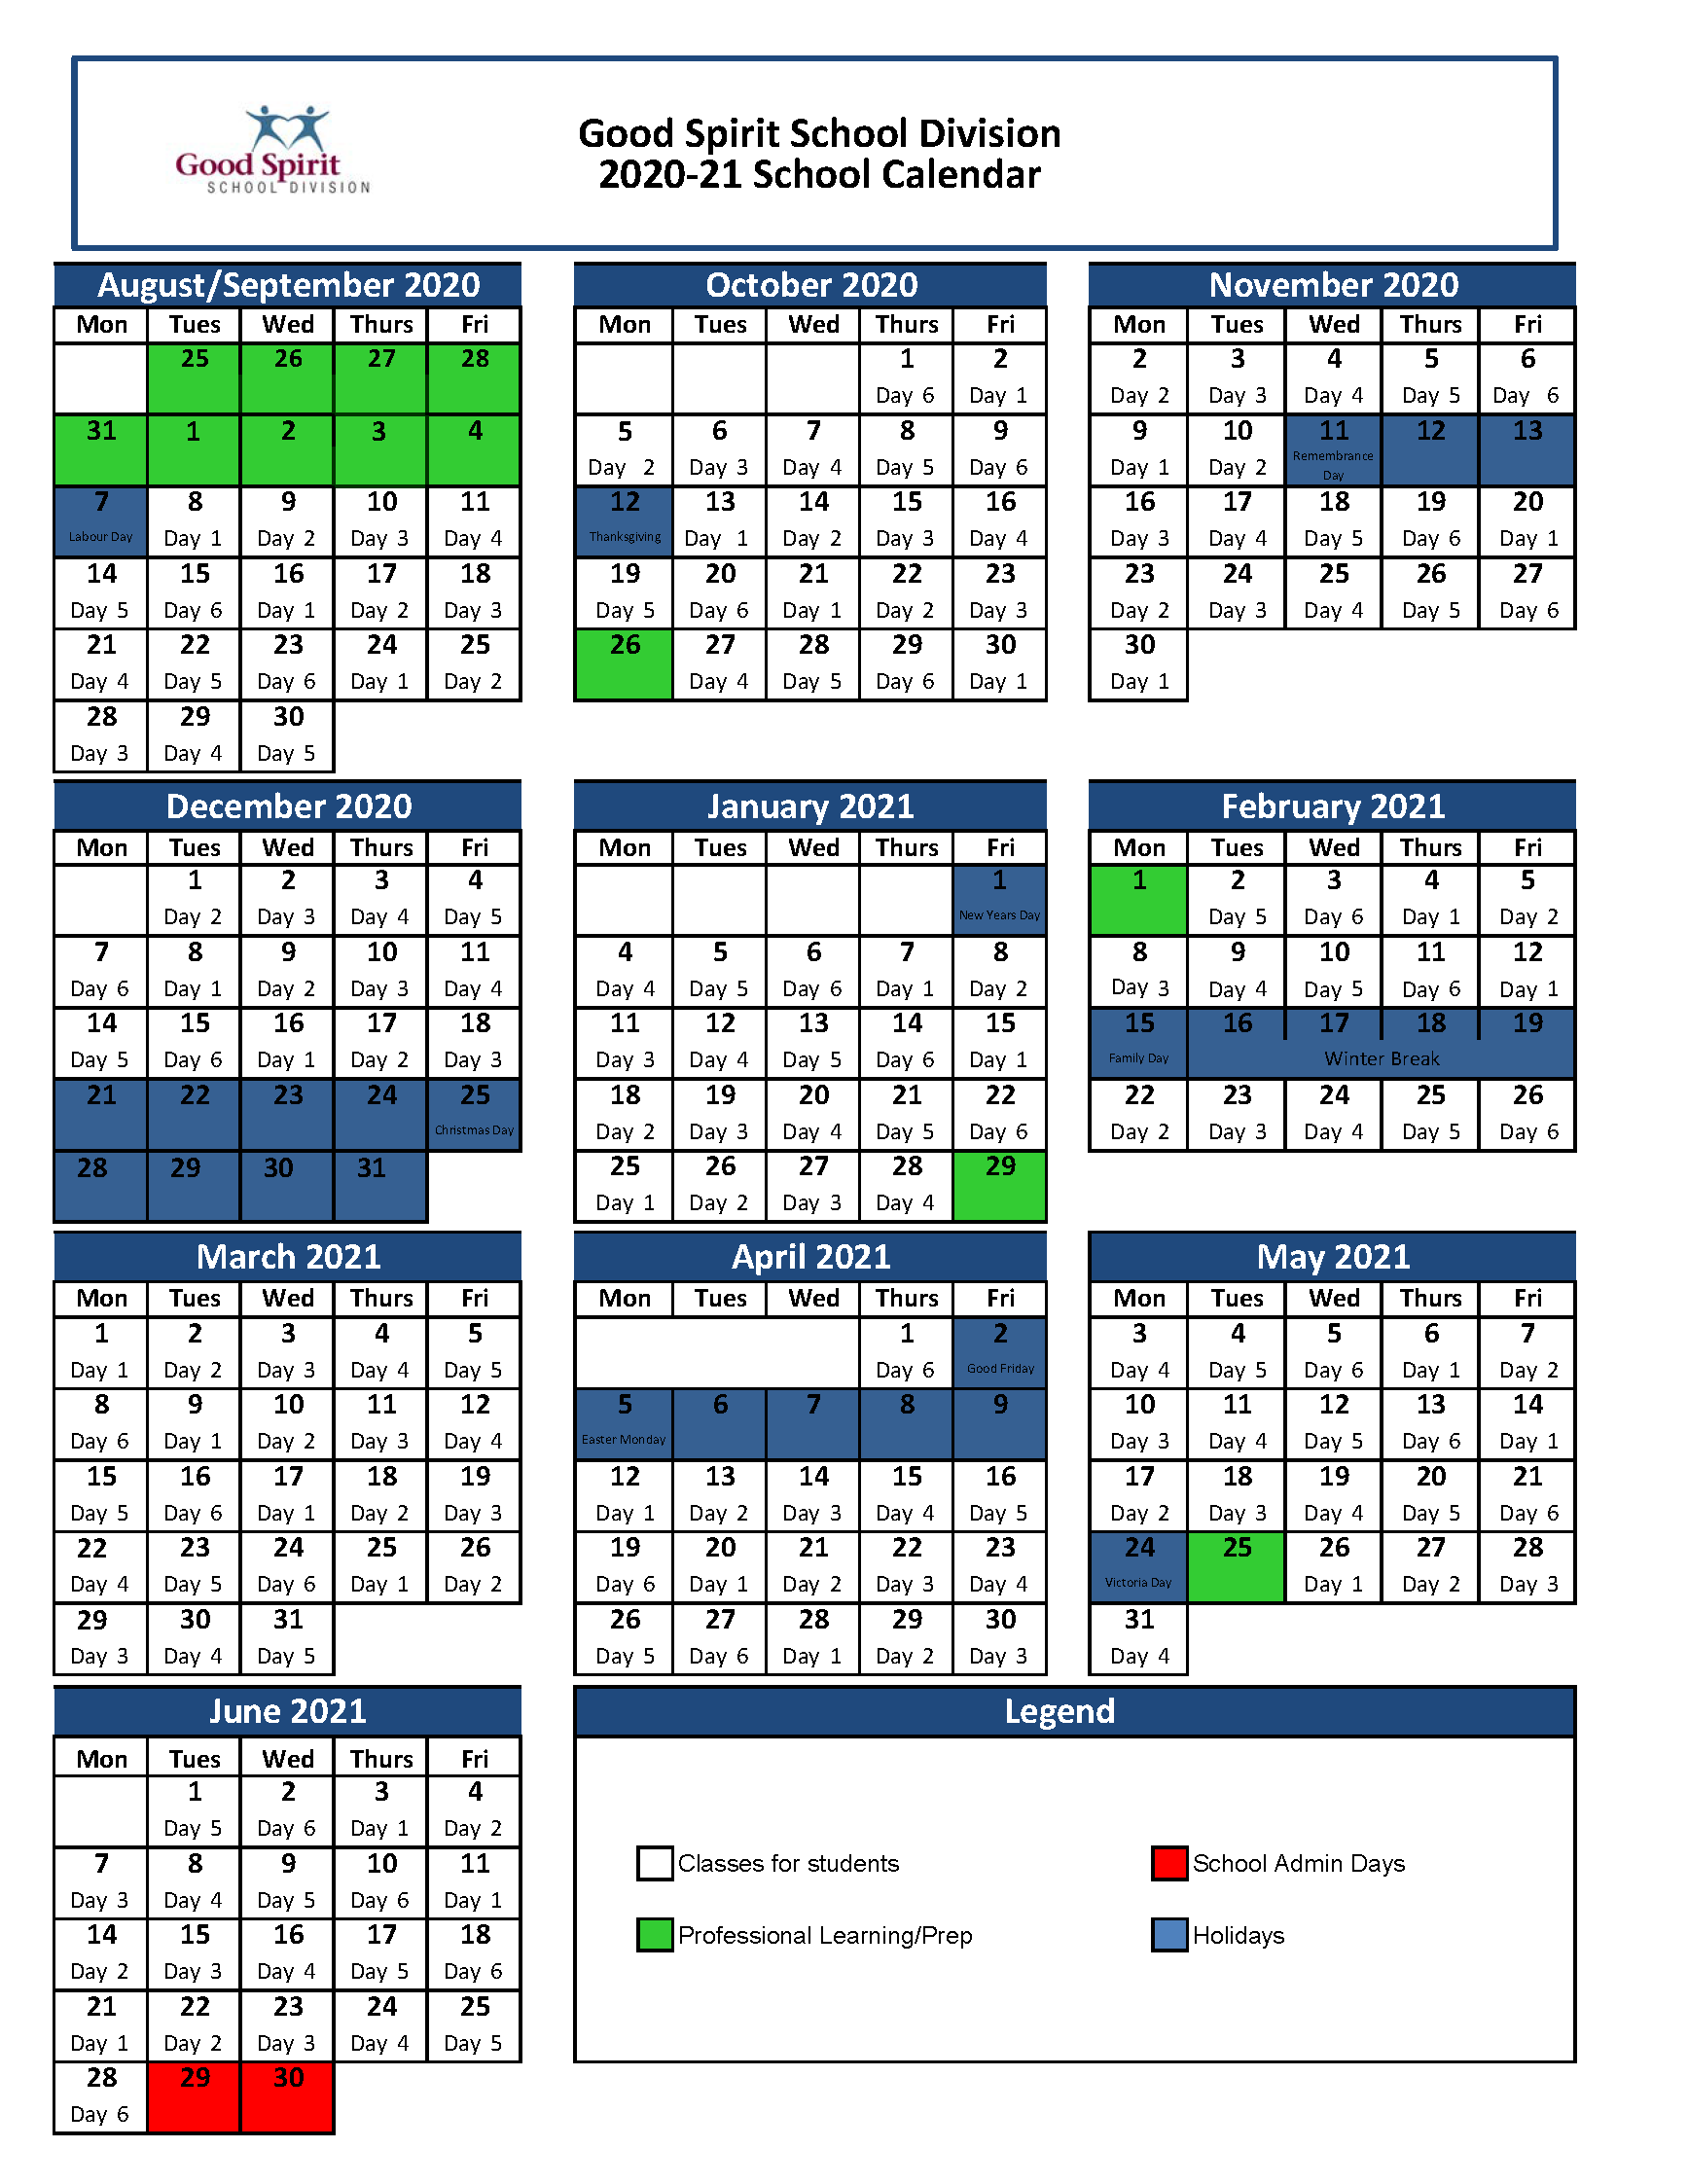 Public Friendly Calendar Updated.png